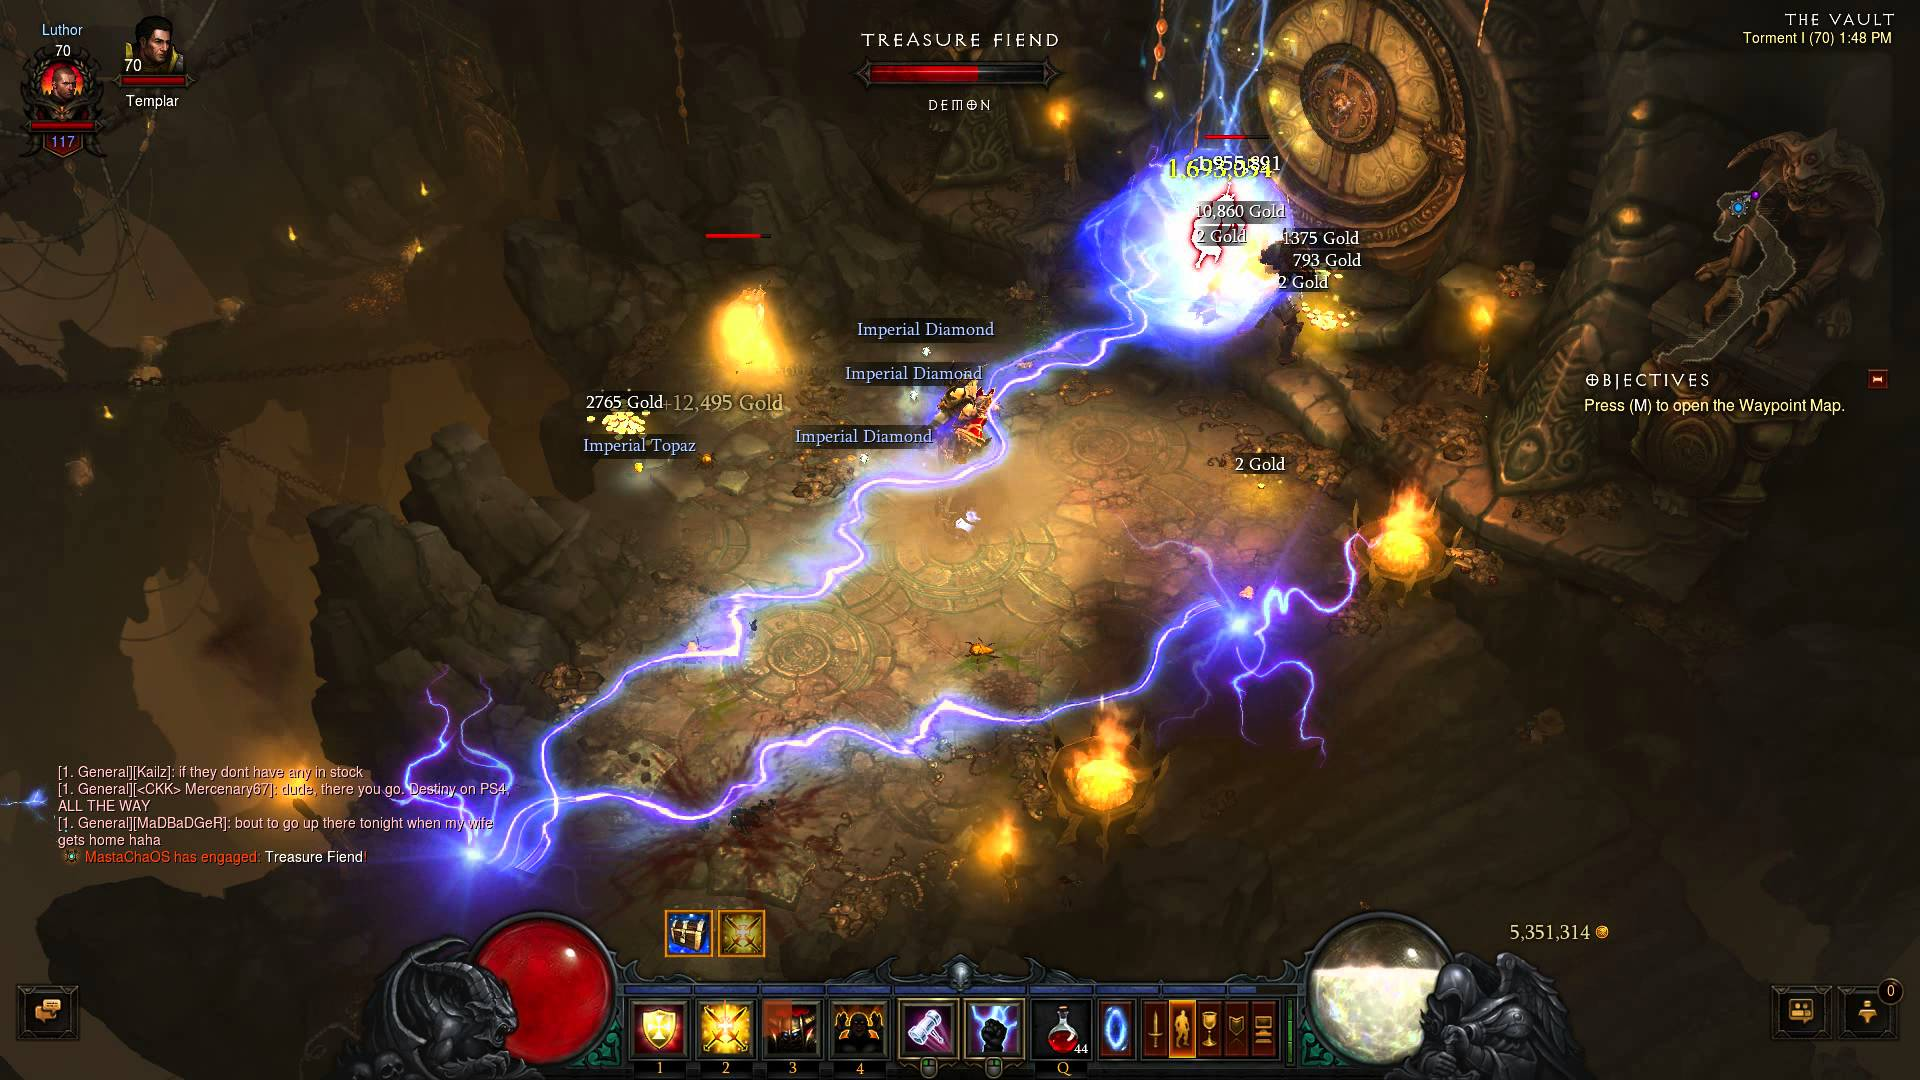 Diablo III – Greed's Treasure Realm